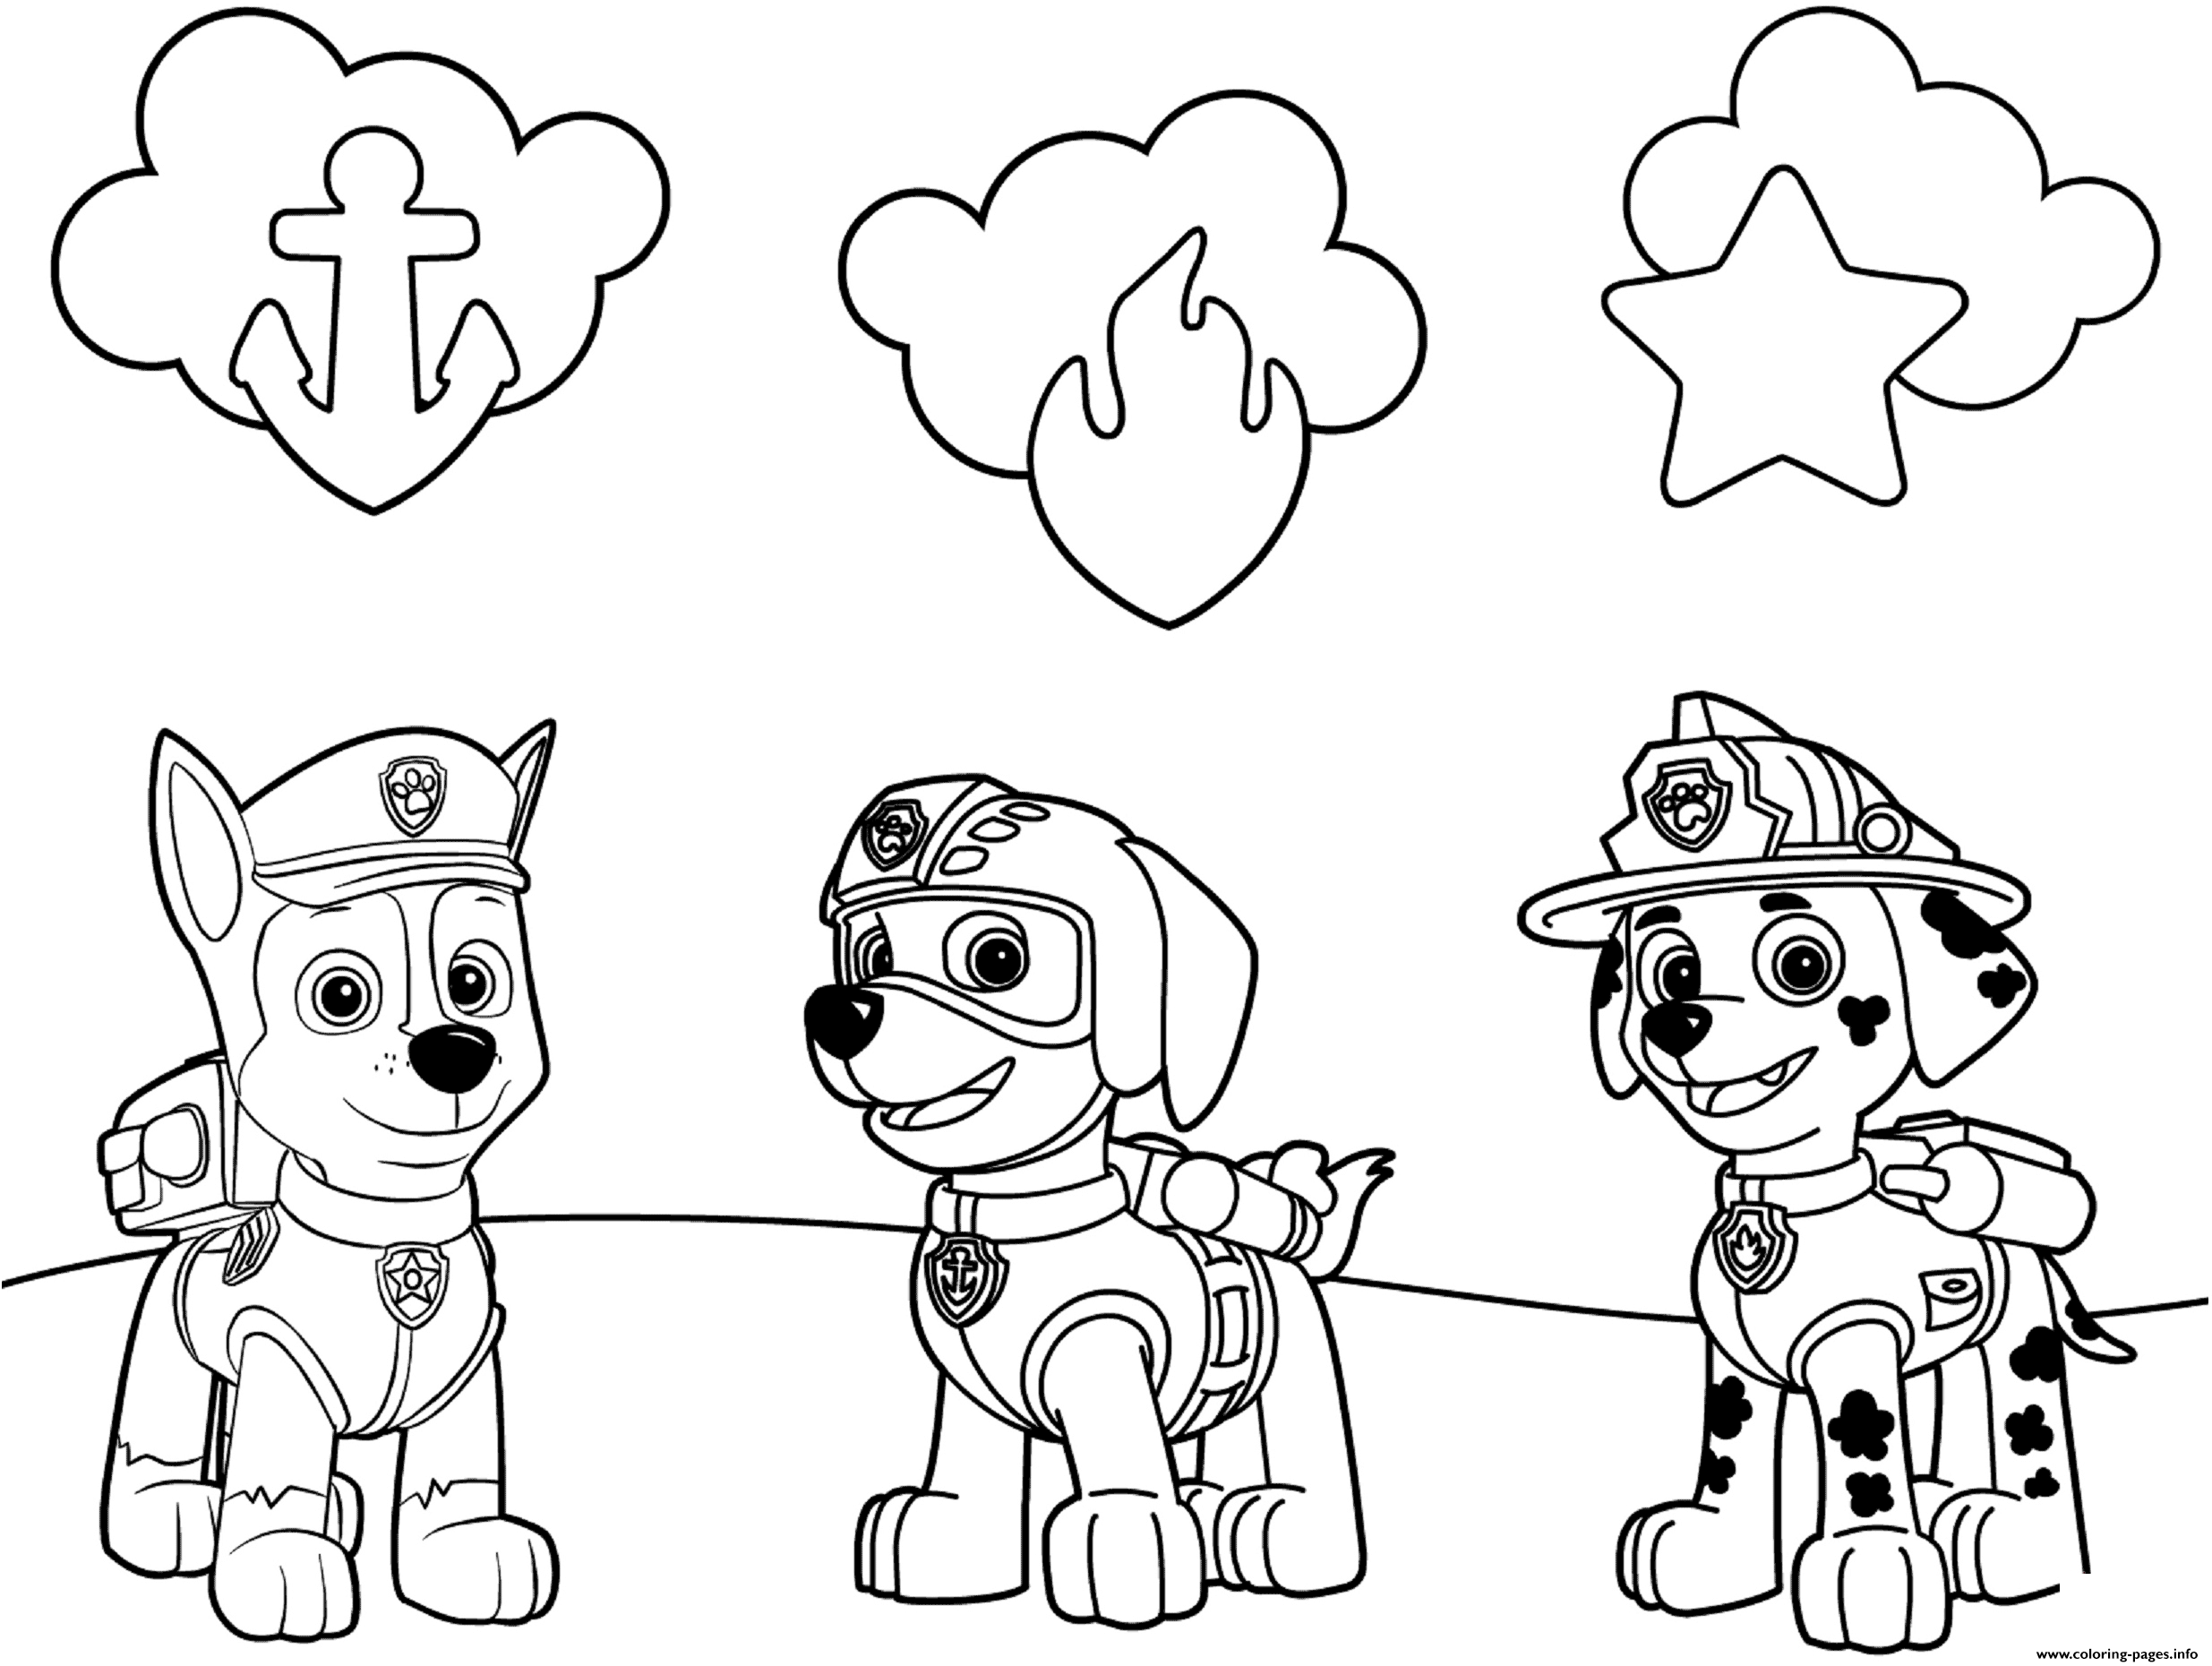 coloring pagesinfo has over 65 awesome paw patrol coloring pages including this cute coloring sheet of chase zuma marshall and their paw patrol badges - Free Printable Paw Patrol Coloring Pages